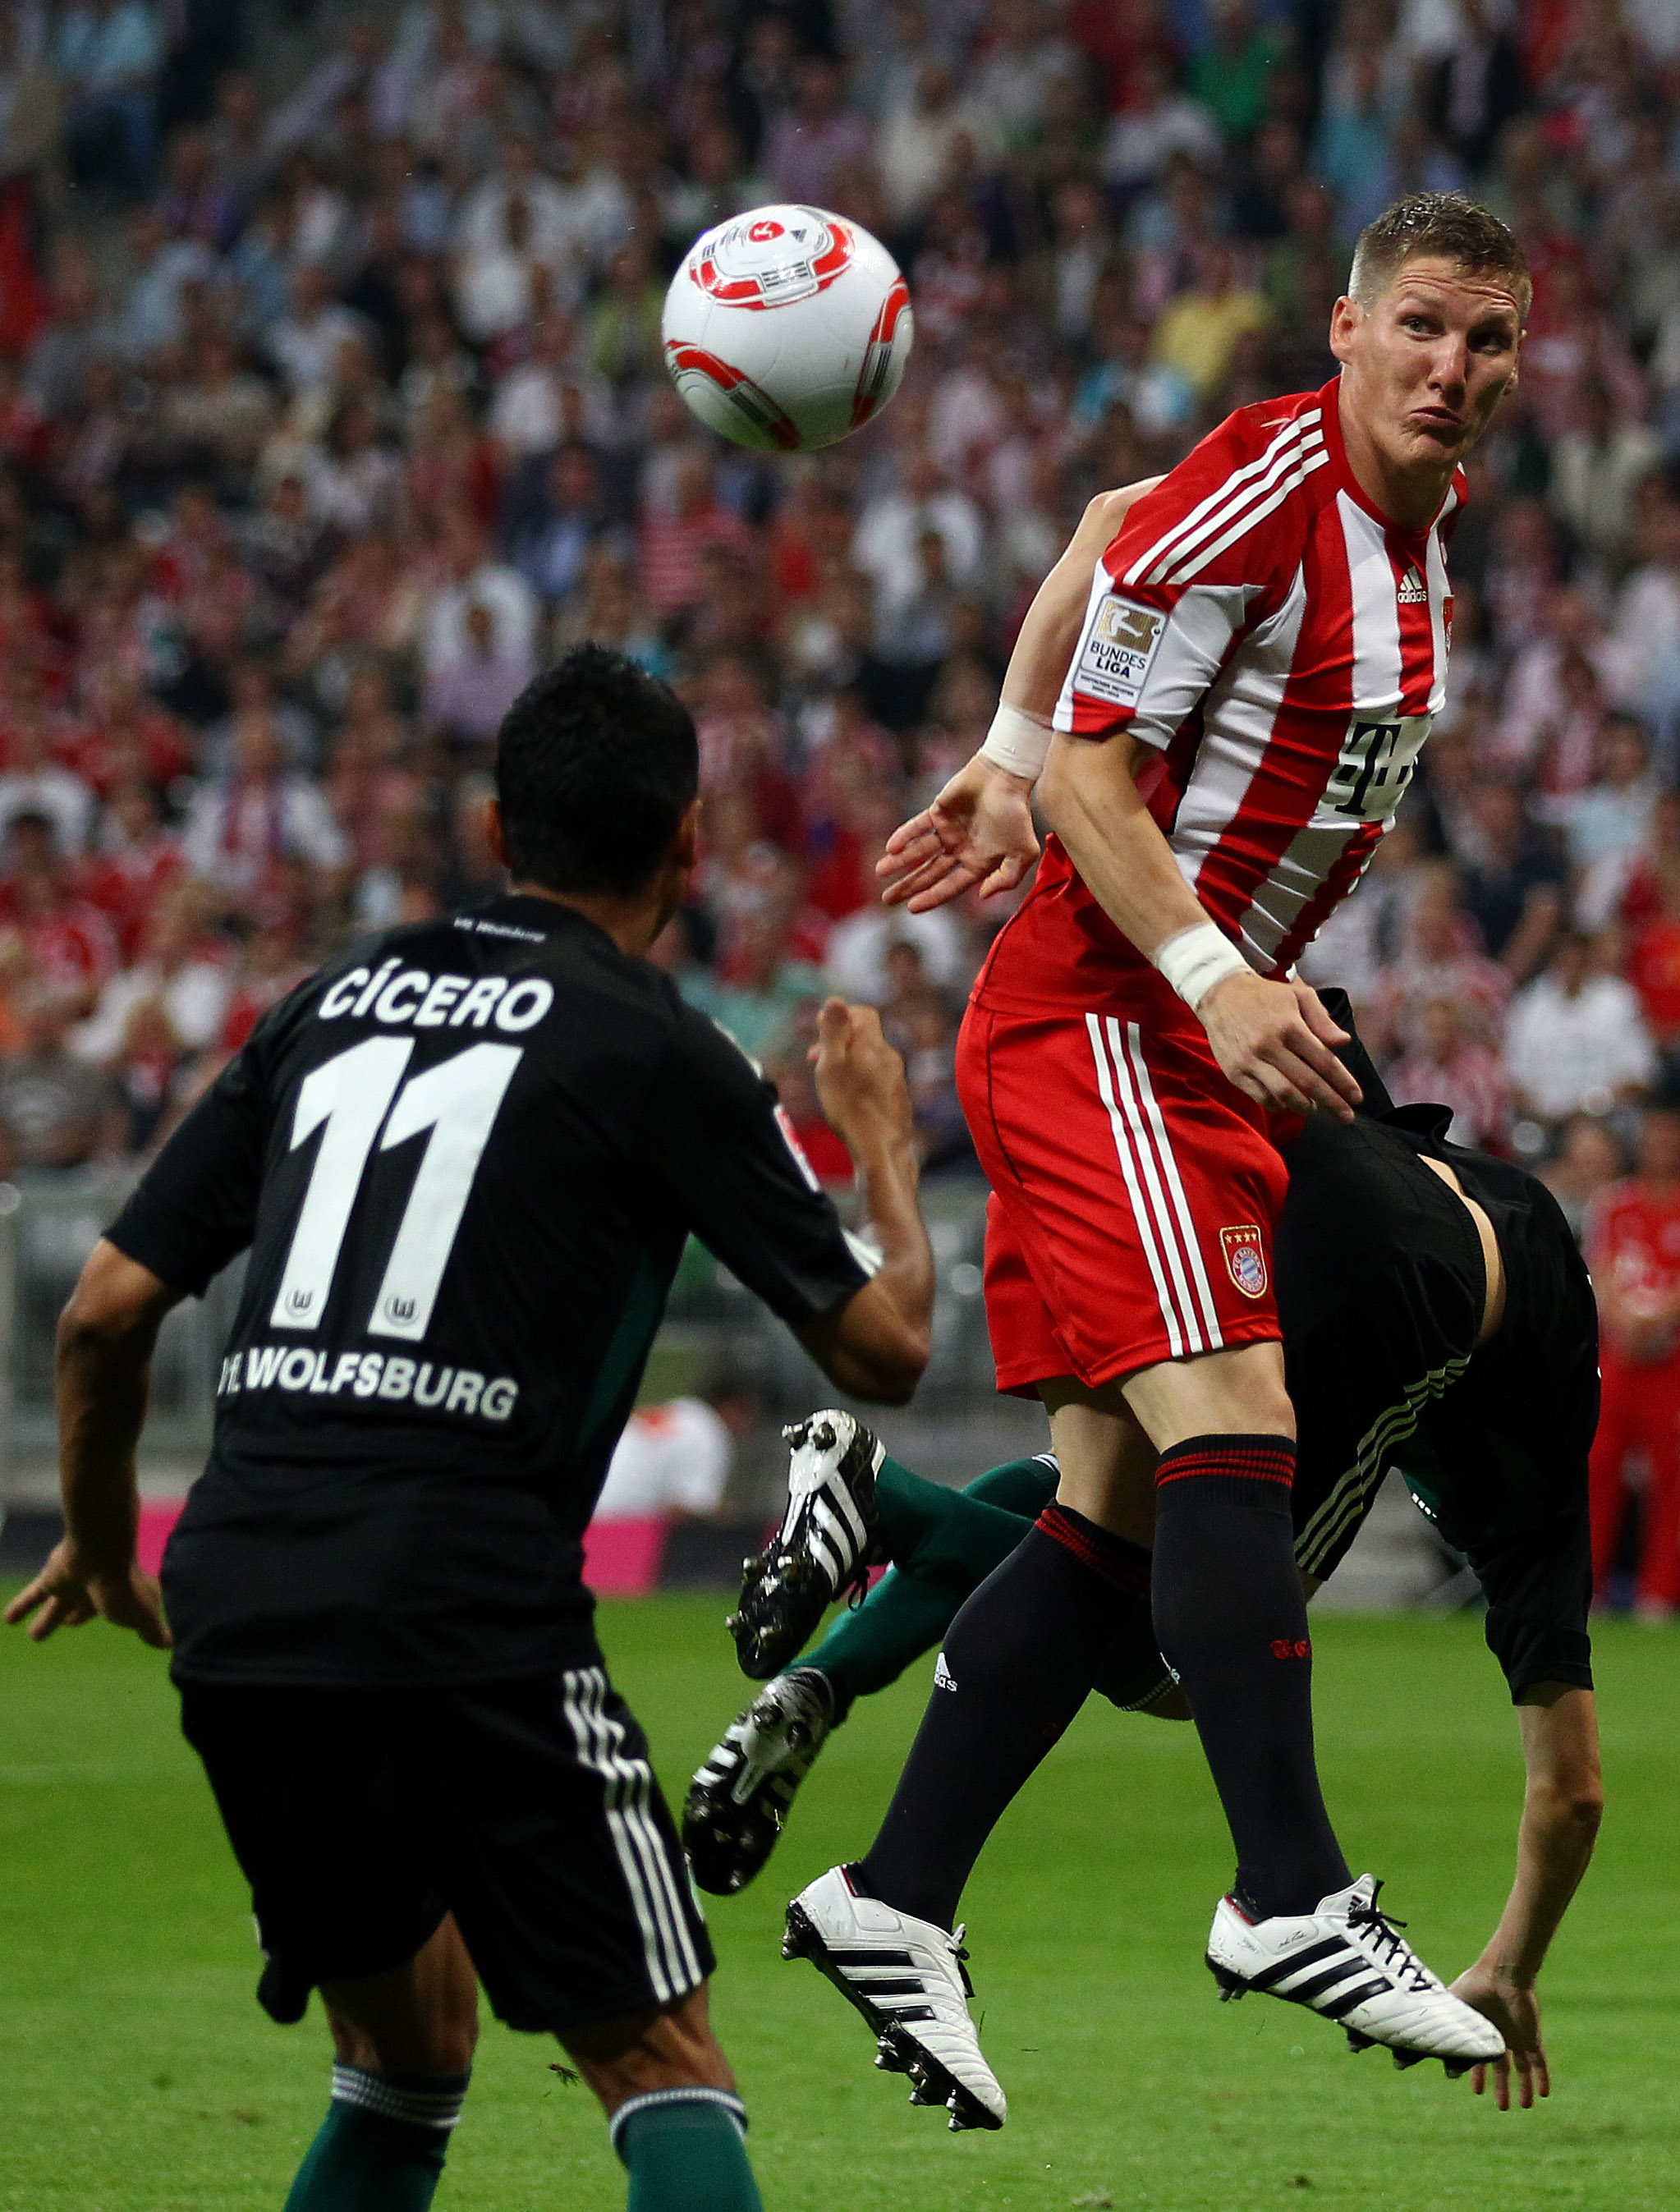 MUNICH, GERMANY - AUGUST 20: Bastian Schweinsteiger of Bayern jumps for a header during the Bundesliga match between FC Bayern Muenchen and VfL Wolfsburg at Allianz Arena on August 20, 2010 in Munich, Germany.  (Photo by Clive Brunskill/Getty Images)